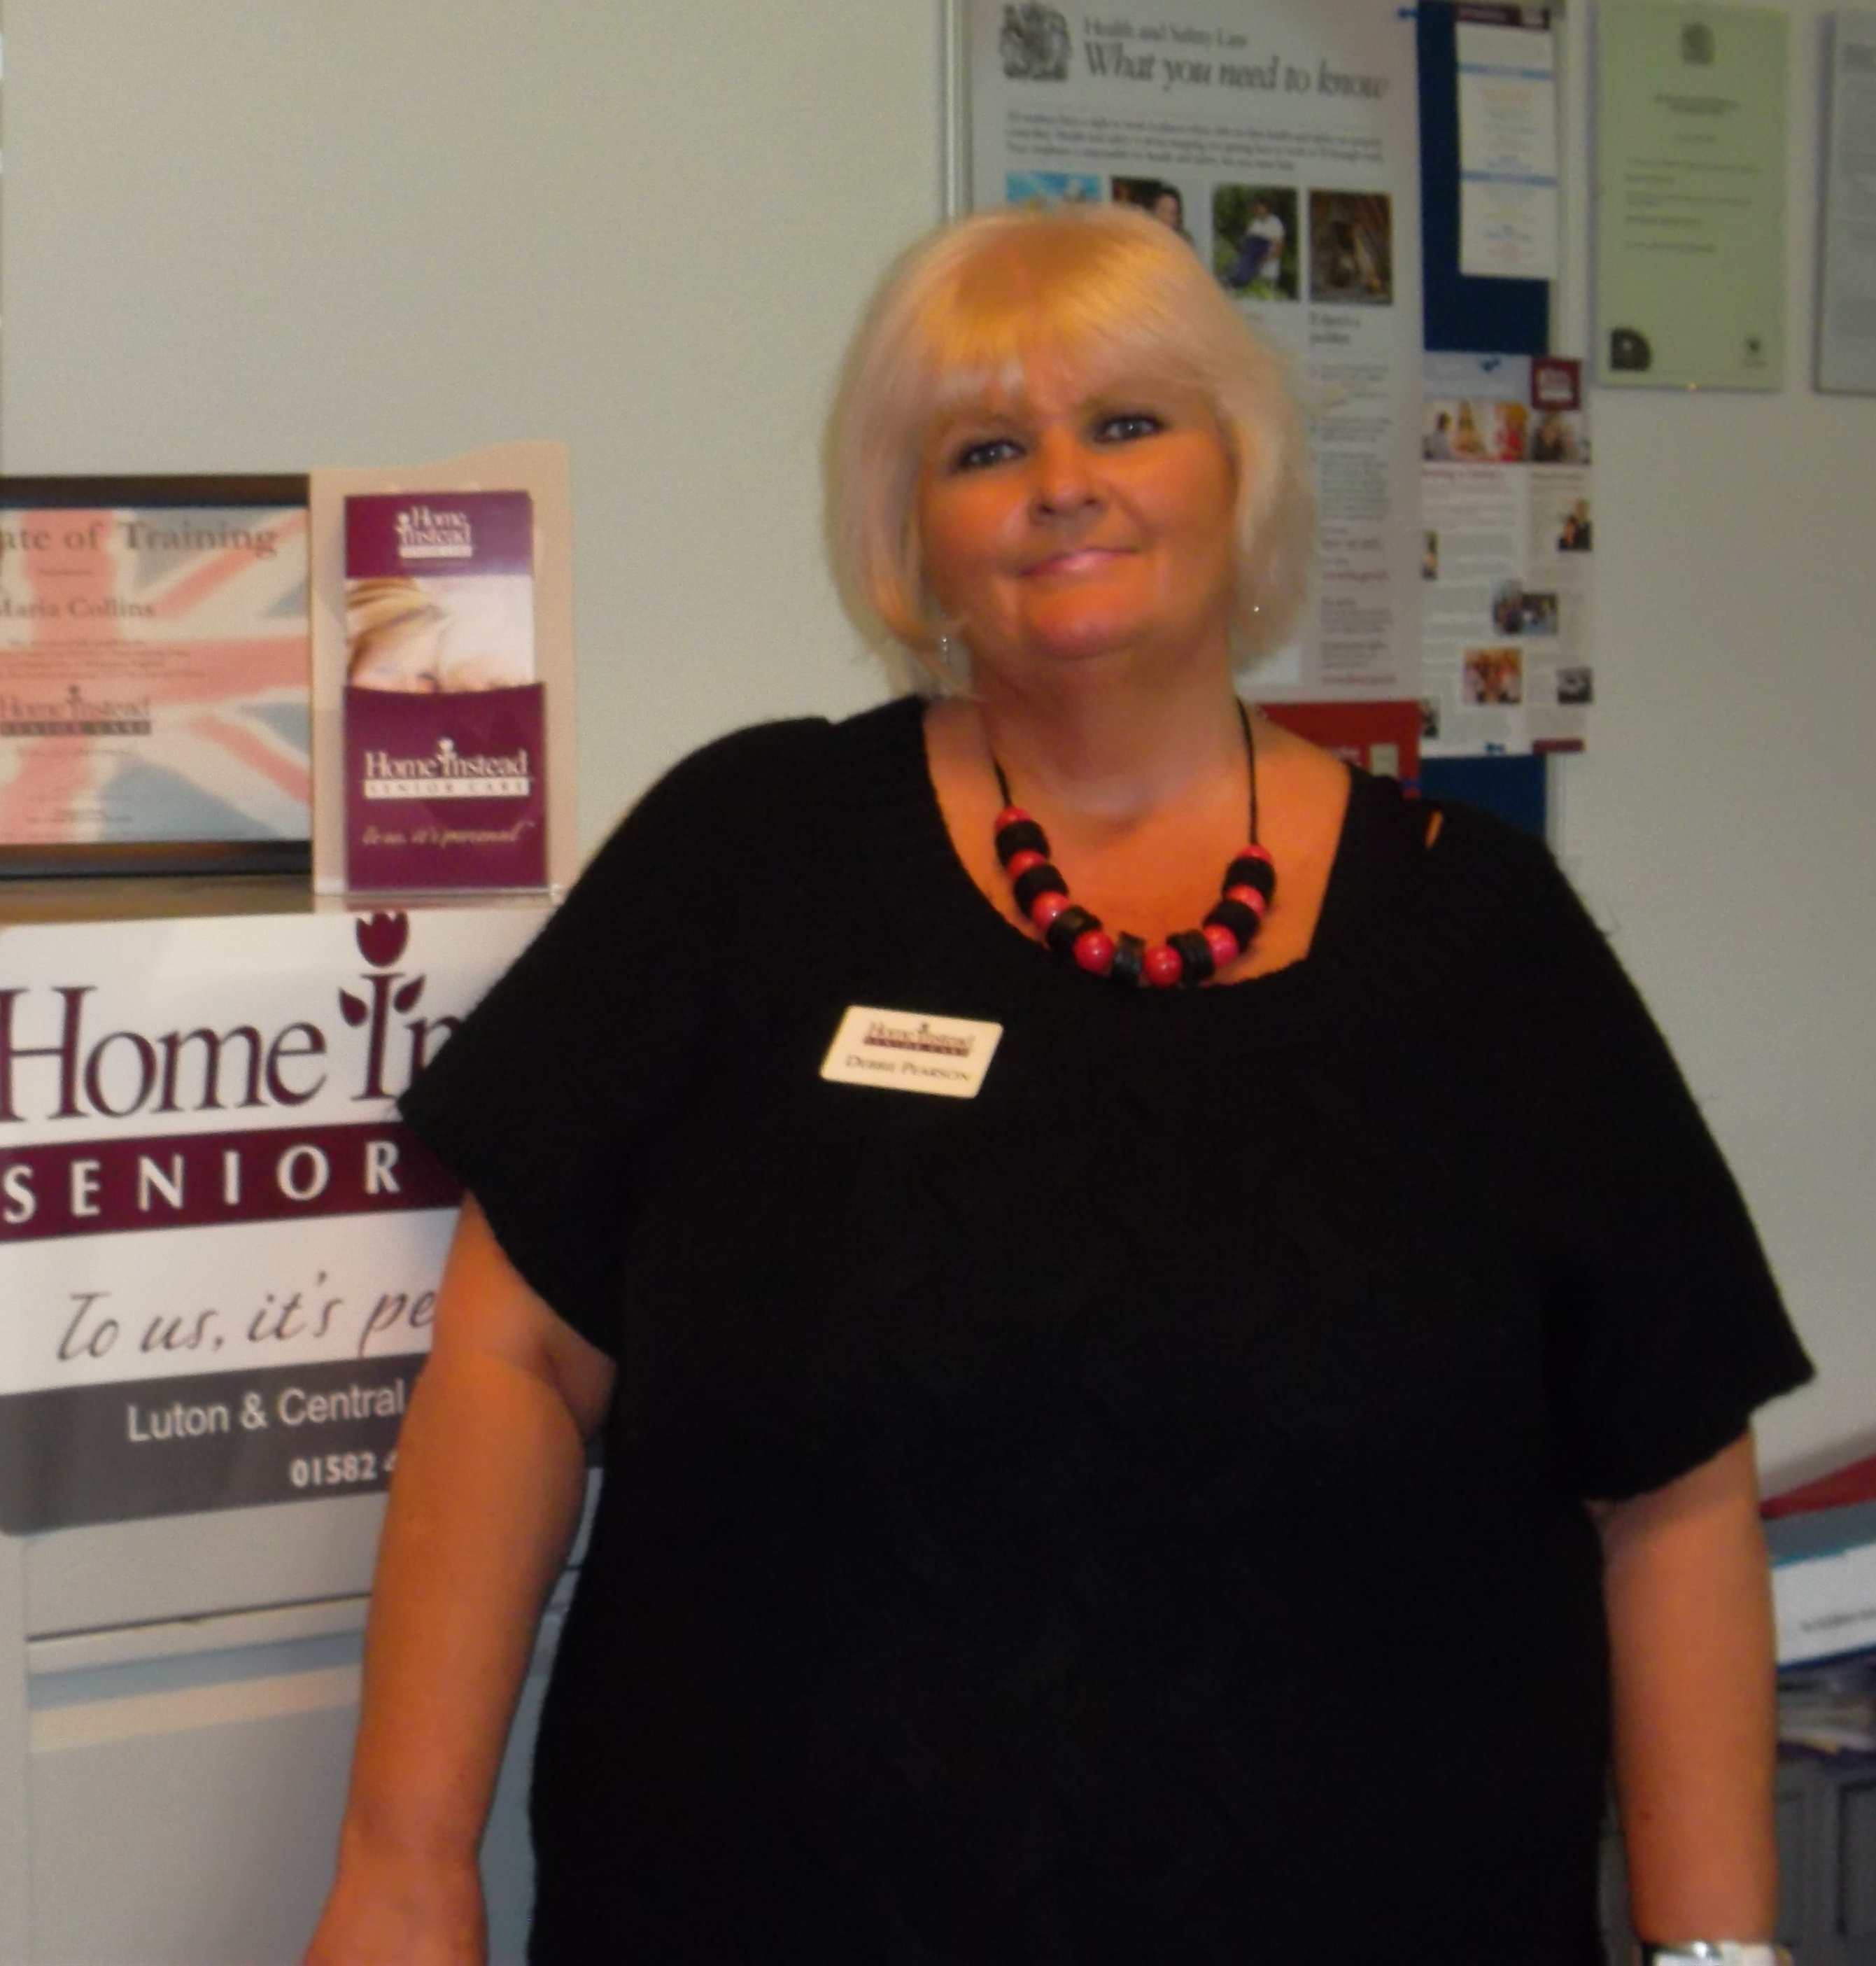 Home Instead Senior Care Luton & Central Bedfordshire newly appointed Care Manager Debbie Pearson